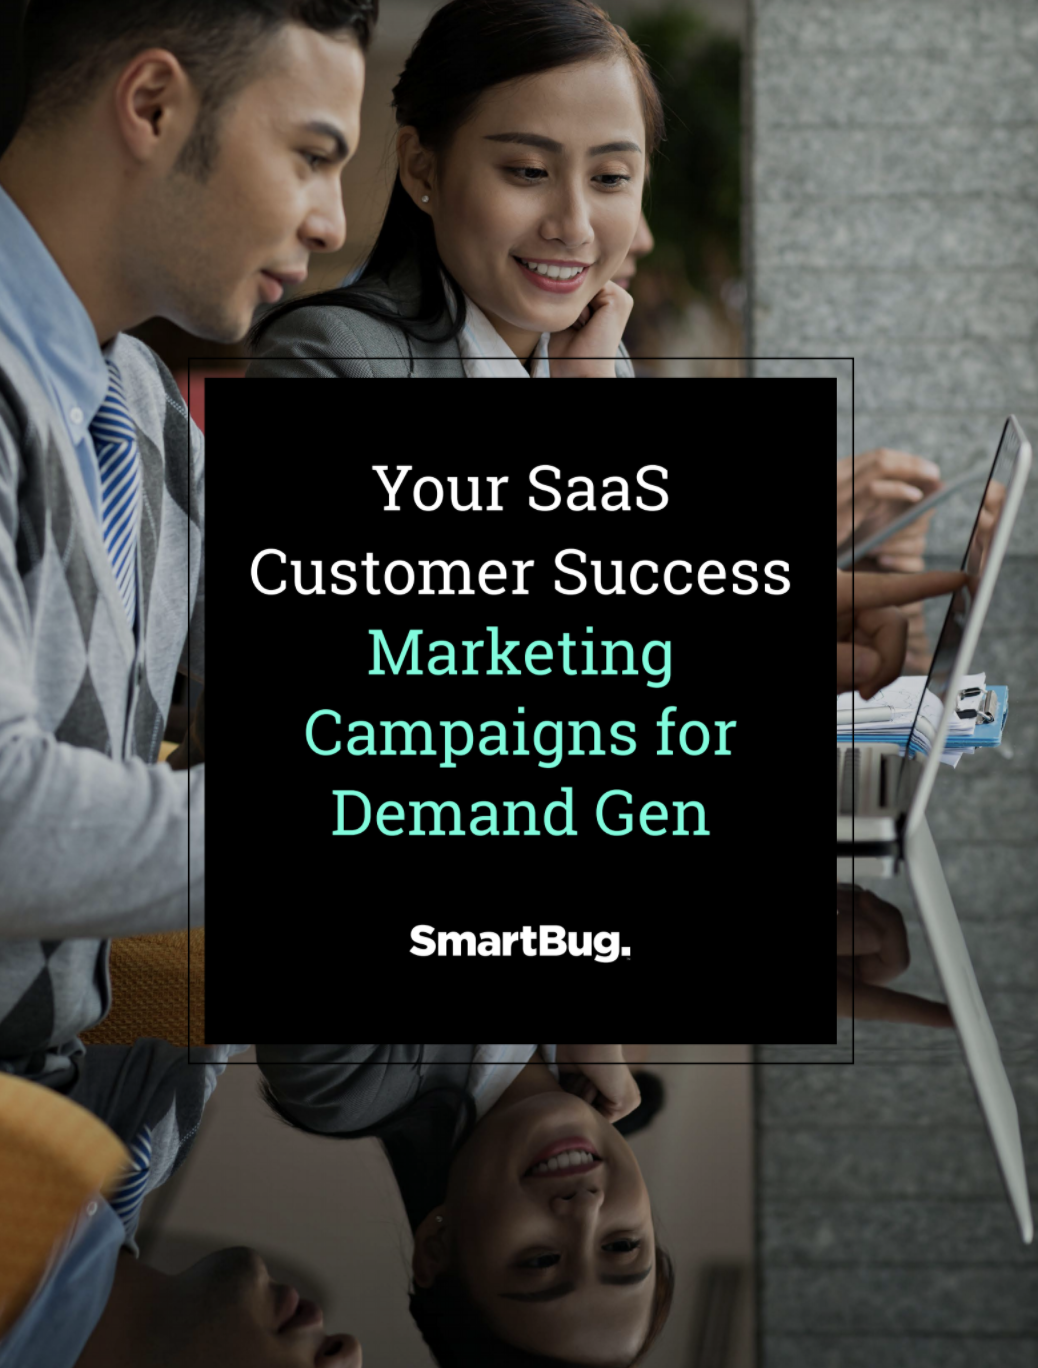 SaaS Customer Success Marketing Campaigns